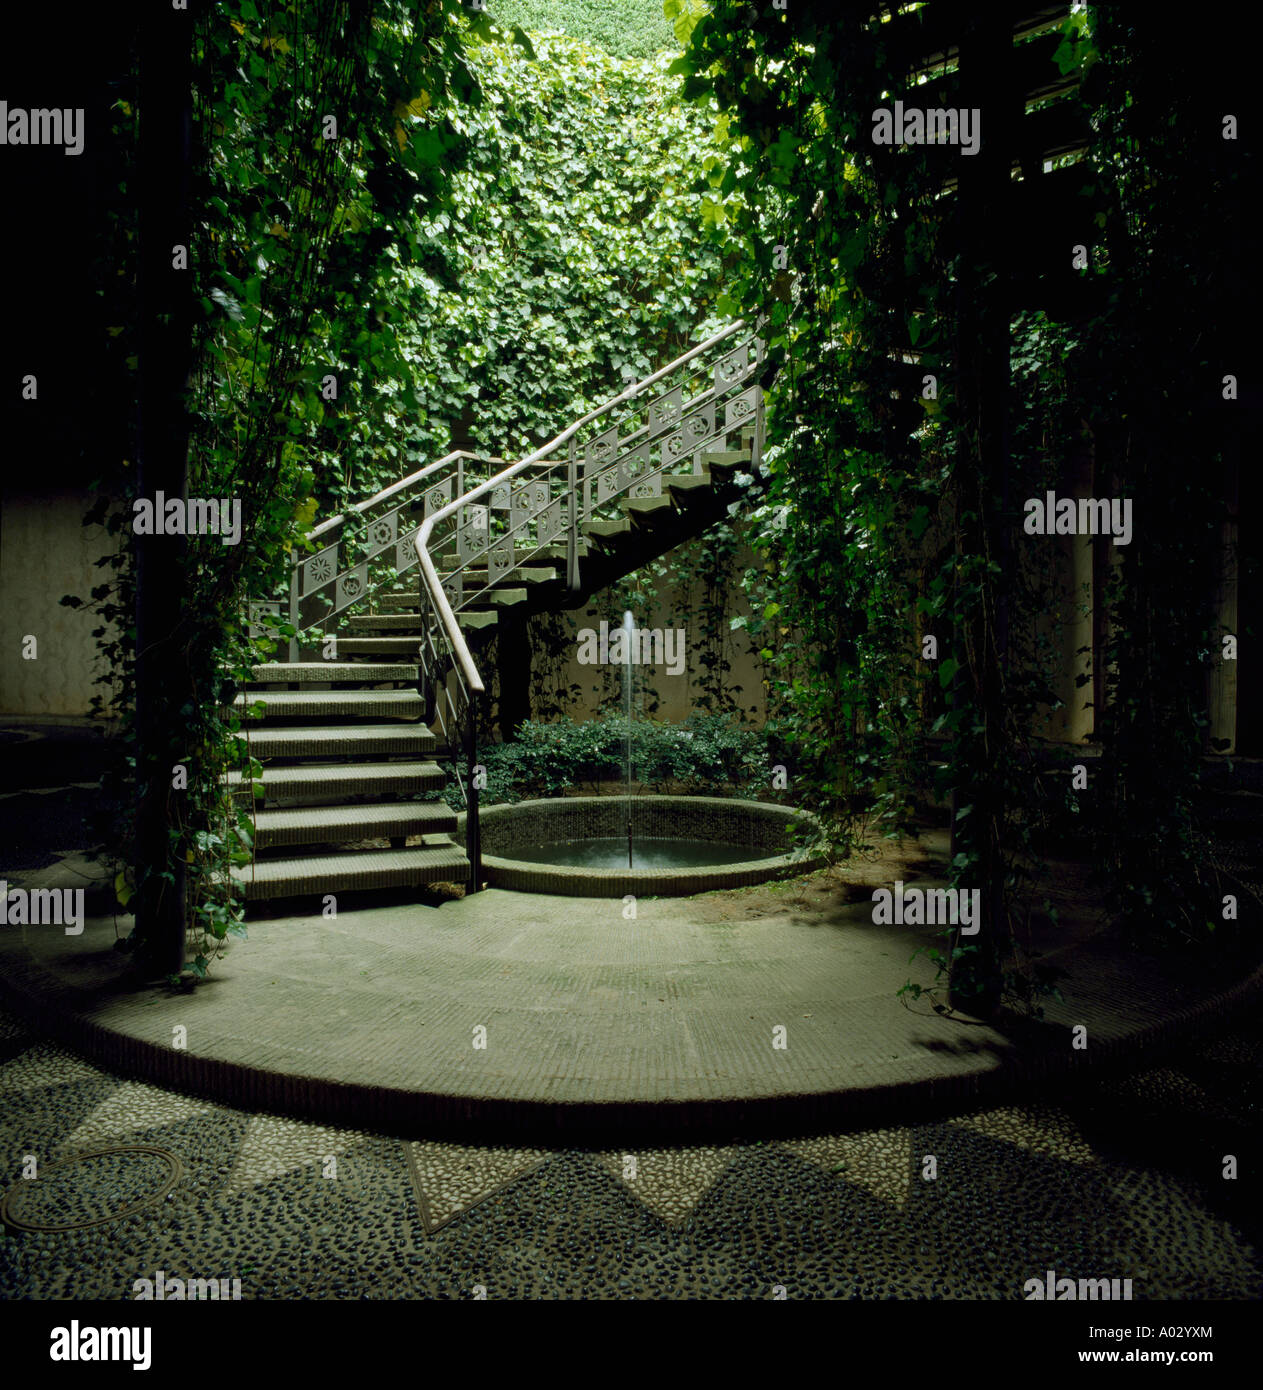 Italian Courtyard Garden High Resolution Stock Photography And Images Alamy